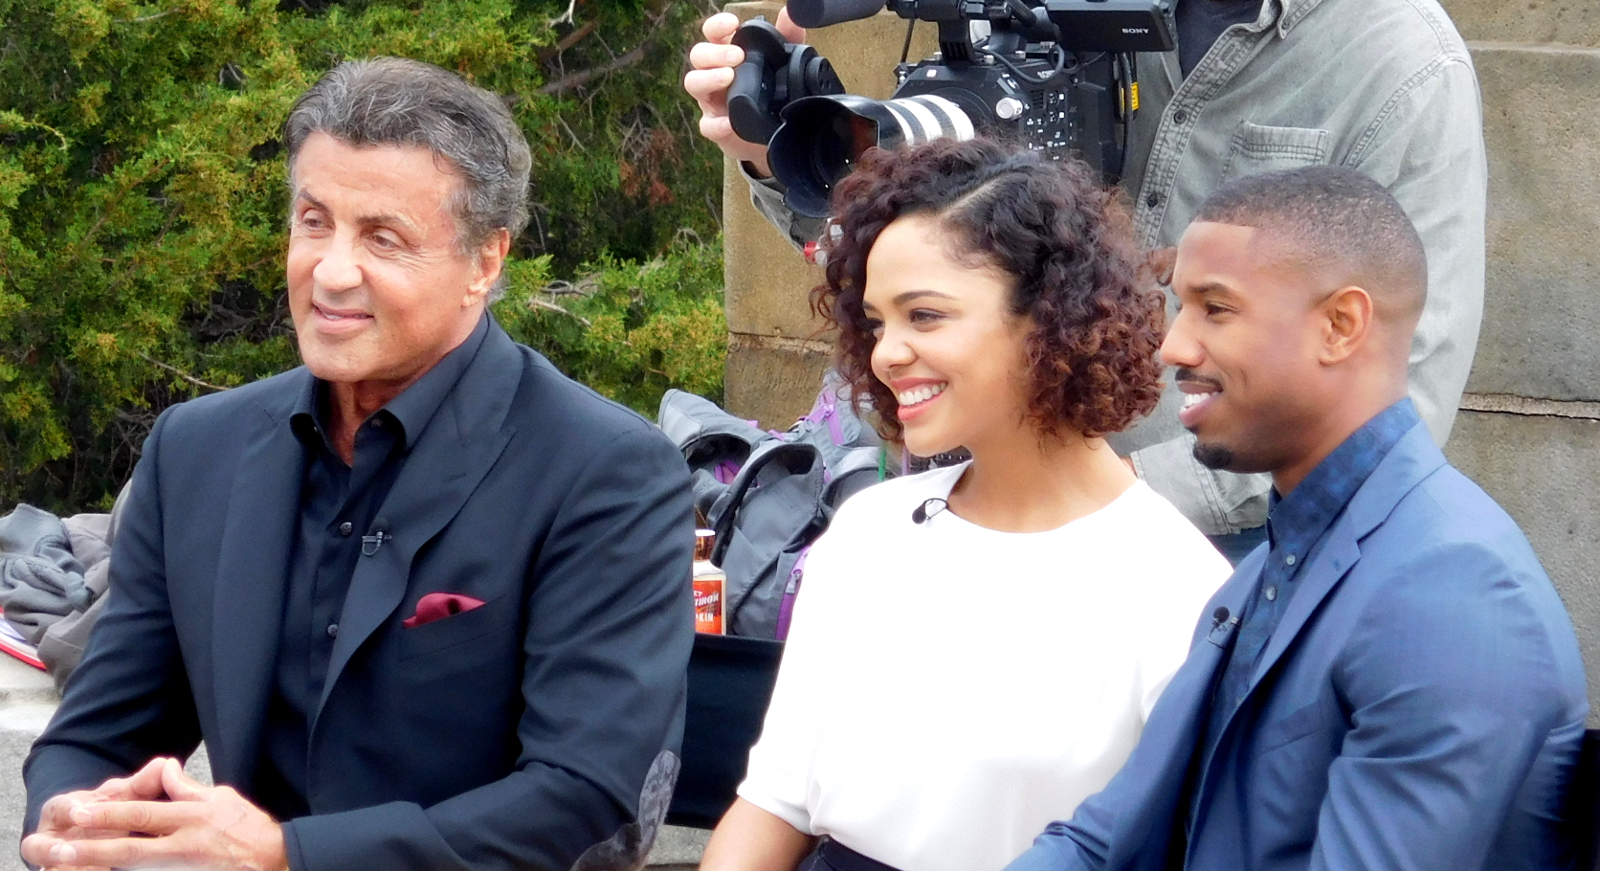 https://upload.wikimedia.org/wikipedia/commons/b/b5/Sylvester_Stallone,_Tessa_Thompson,_and_Michael_B._Jordan_promoting_Creed_at_the_Philadelphia_Art_Museum.JPG